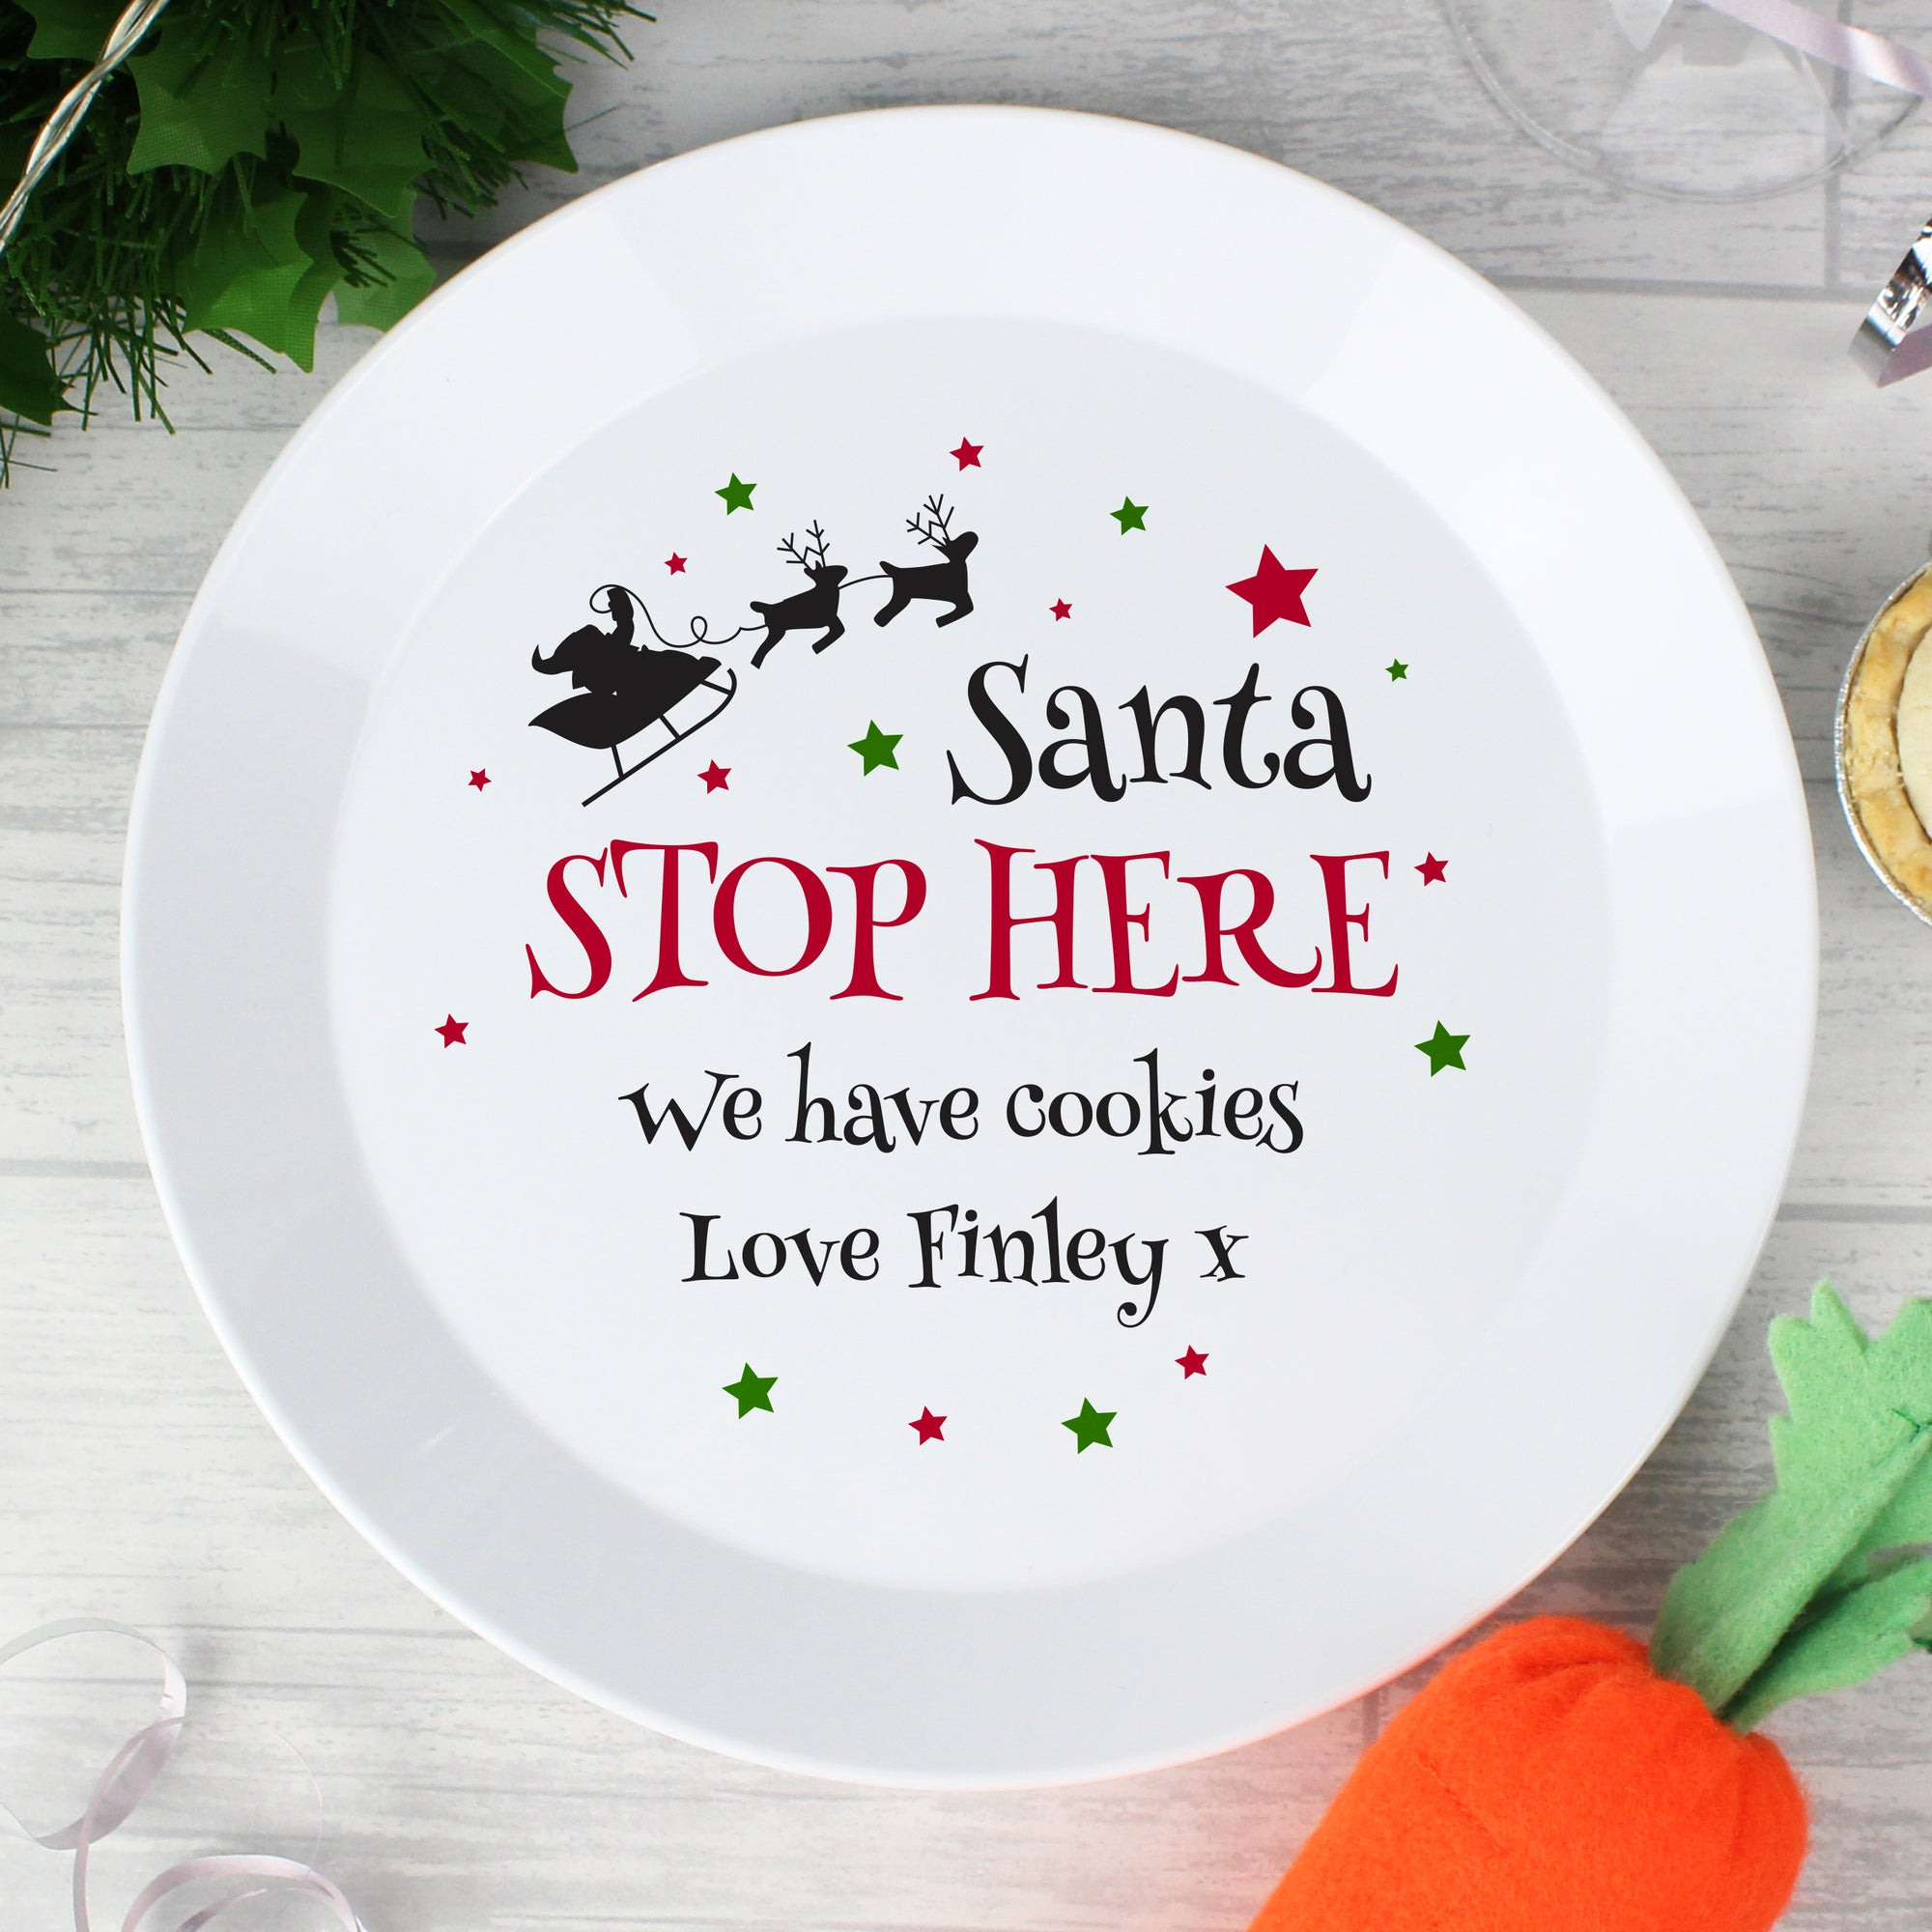 Personalised Christmas Eve Plate featuring the wording 'Santa STOP HERE' in black and red which can then be personalised with your own message over 2 lines of up to 20 characters per line. Made from white shatter-proof BPA free plastic.